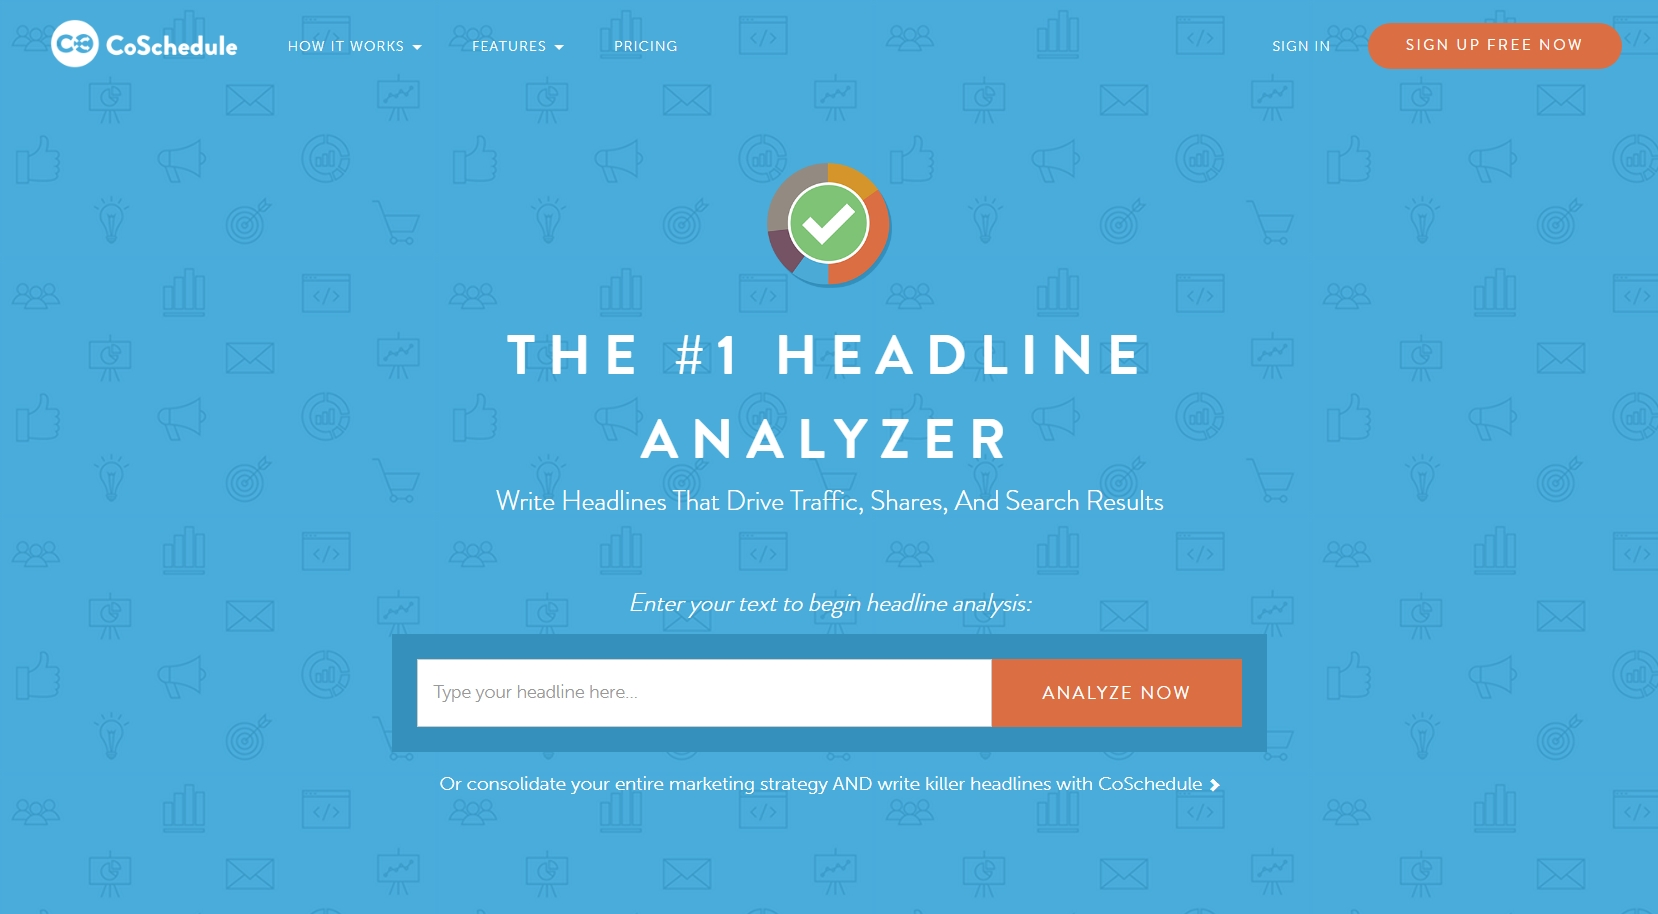 Headline Analyzer From CoSchedule